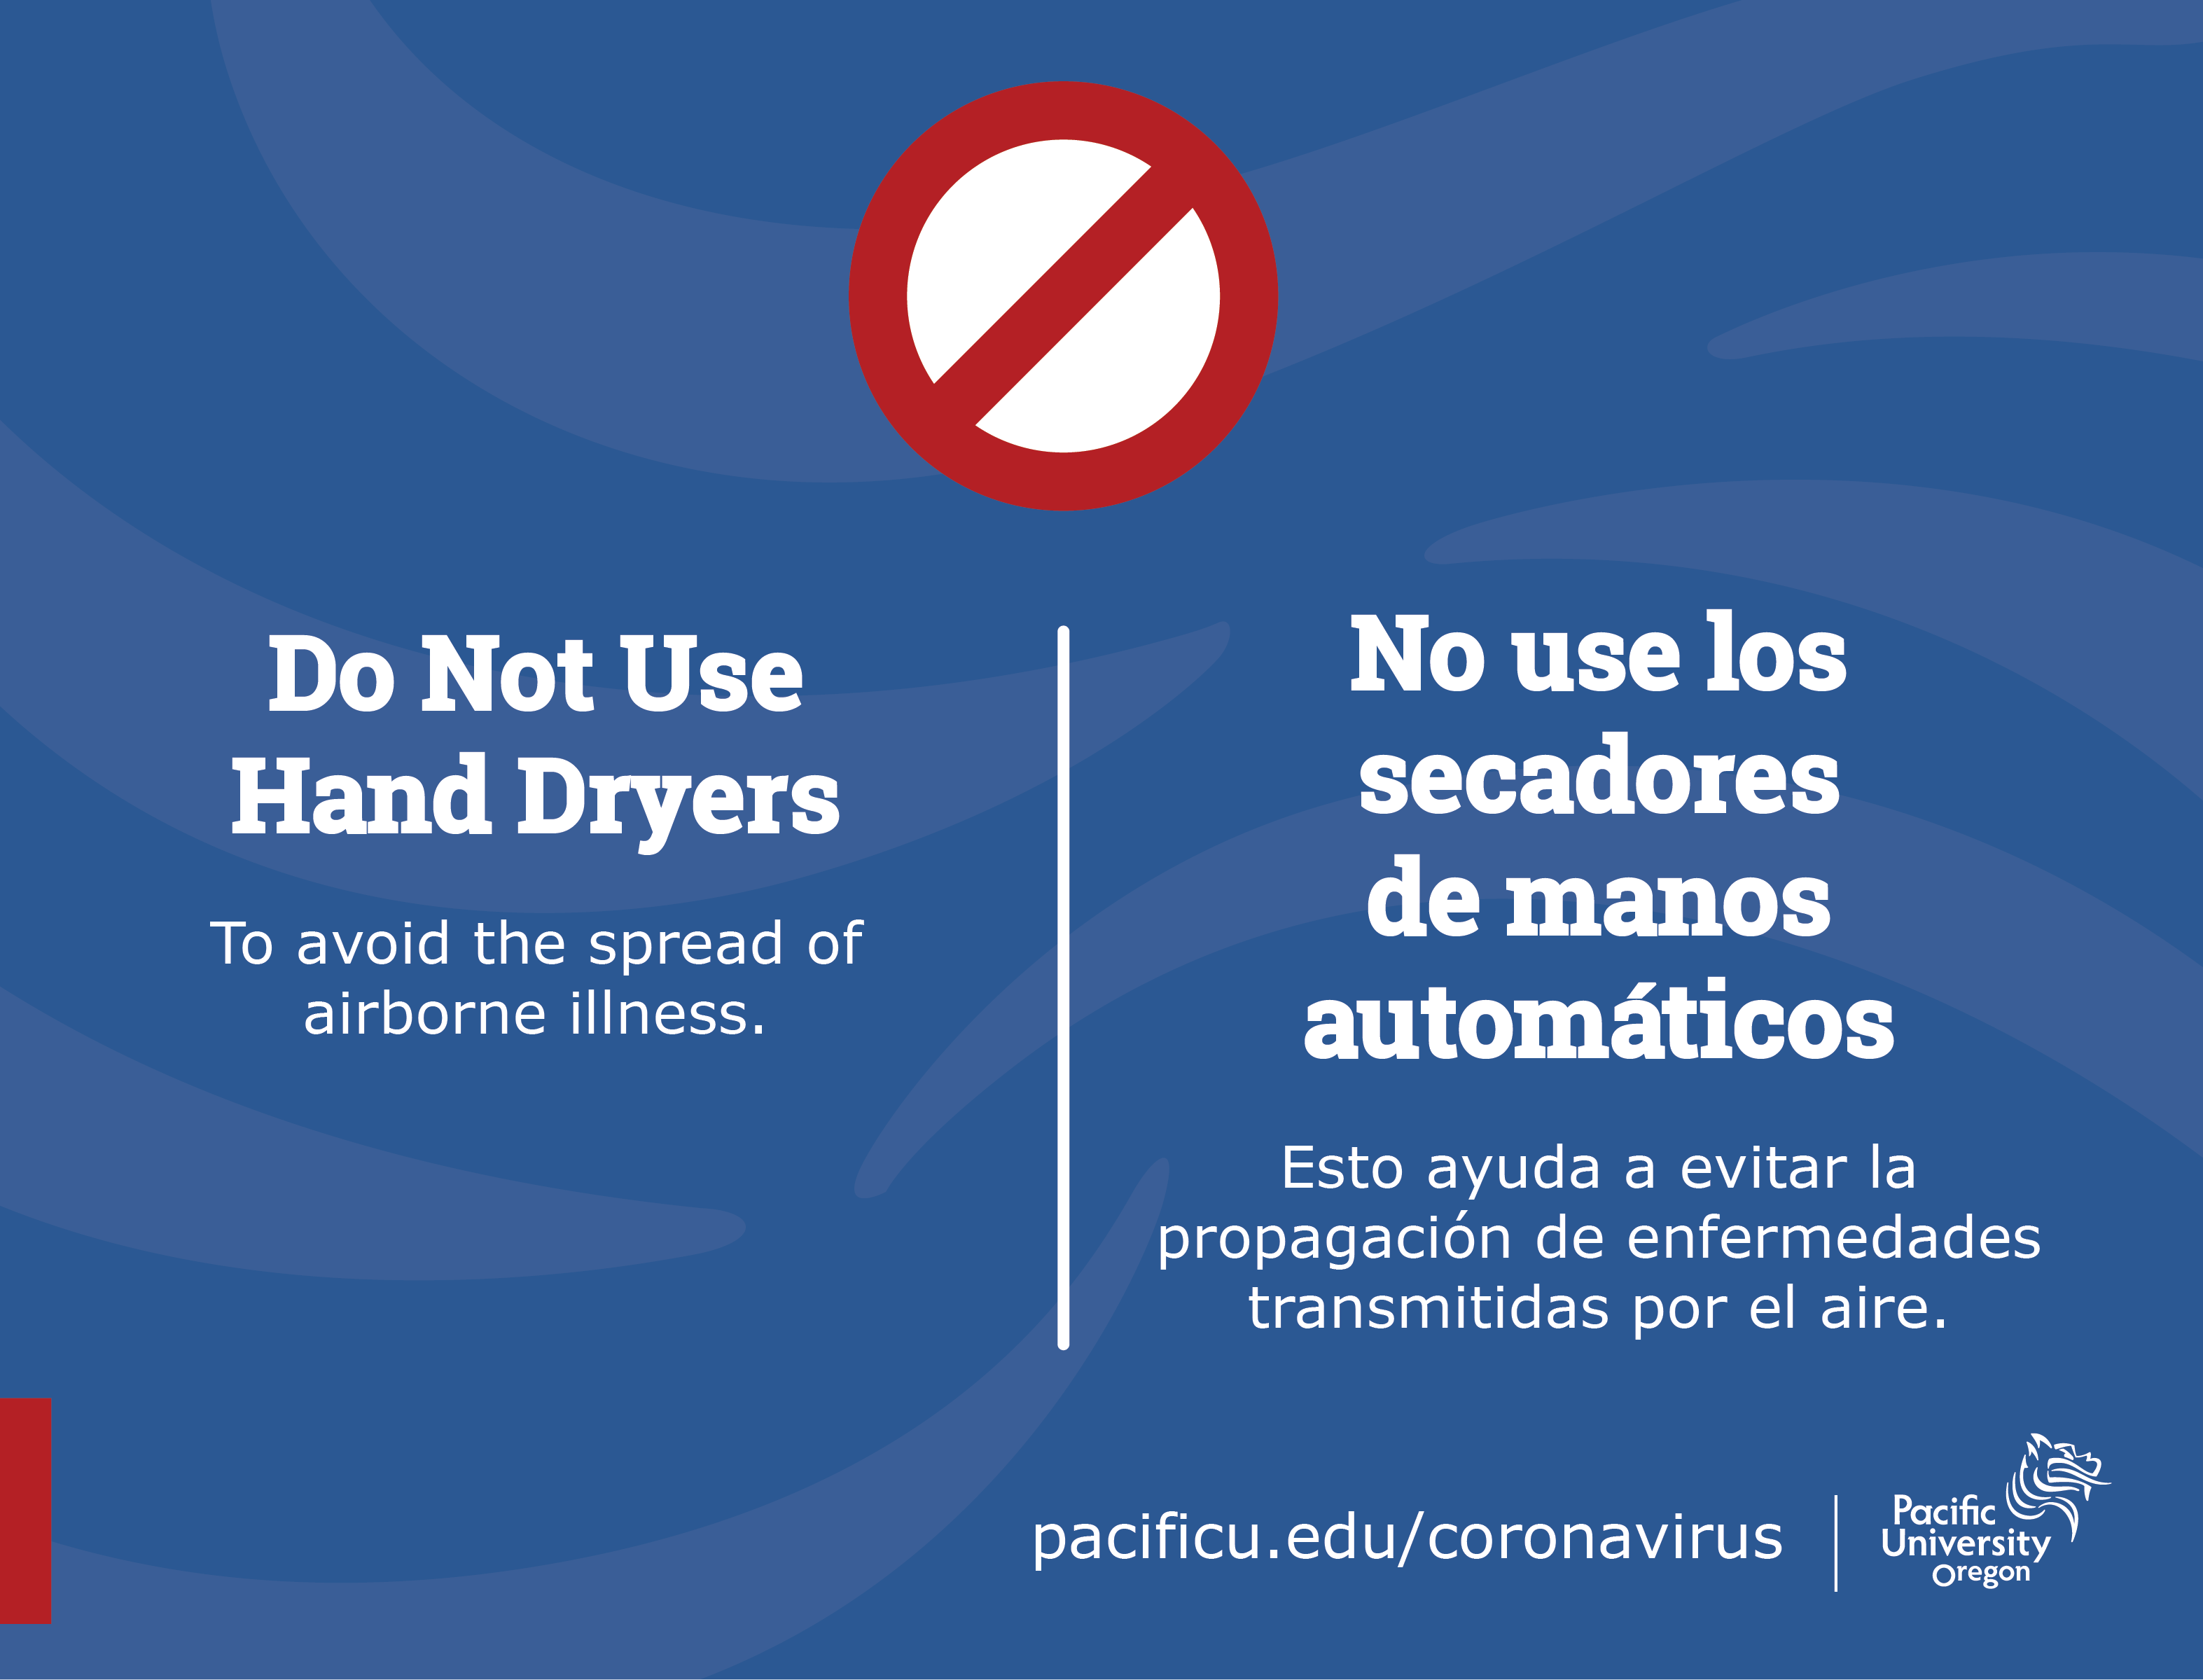 Do Not Use Hand Dryers